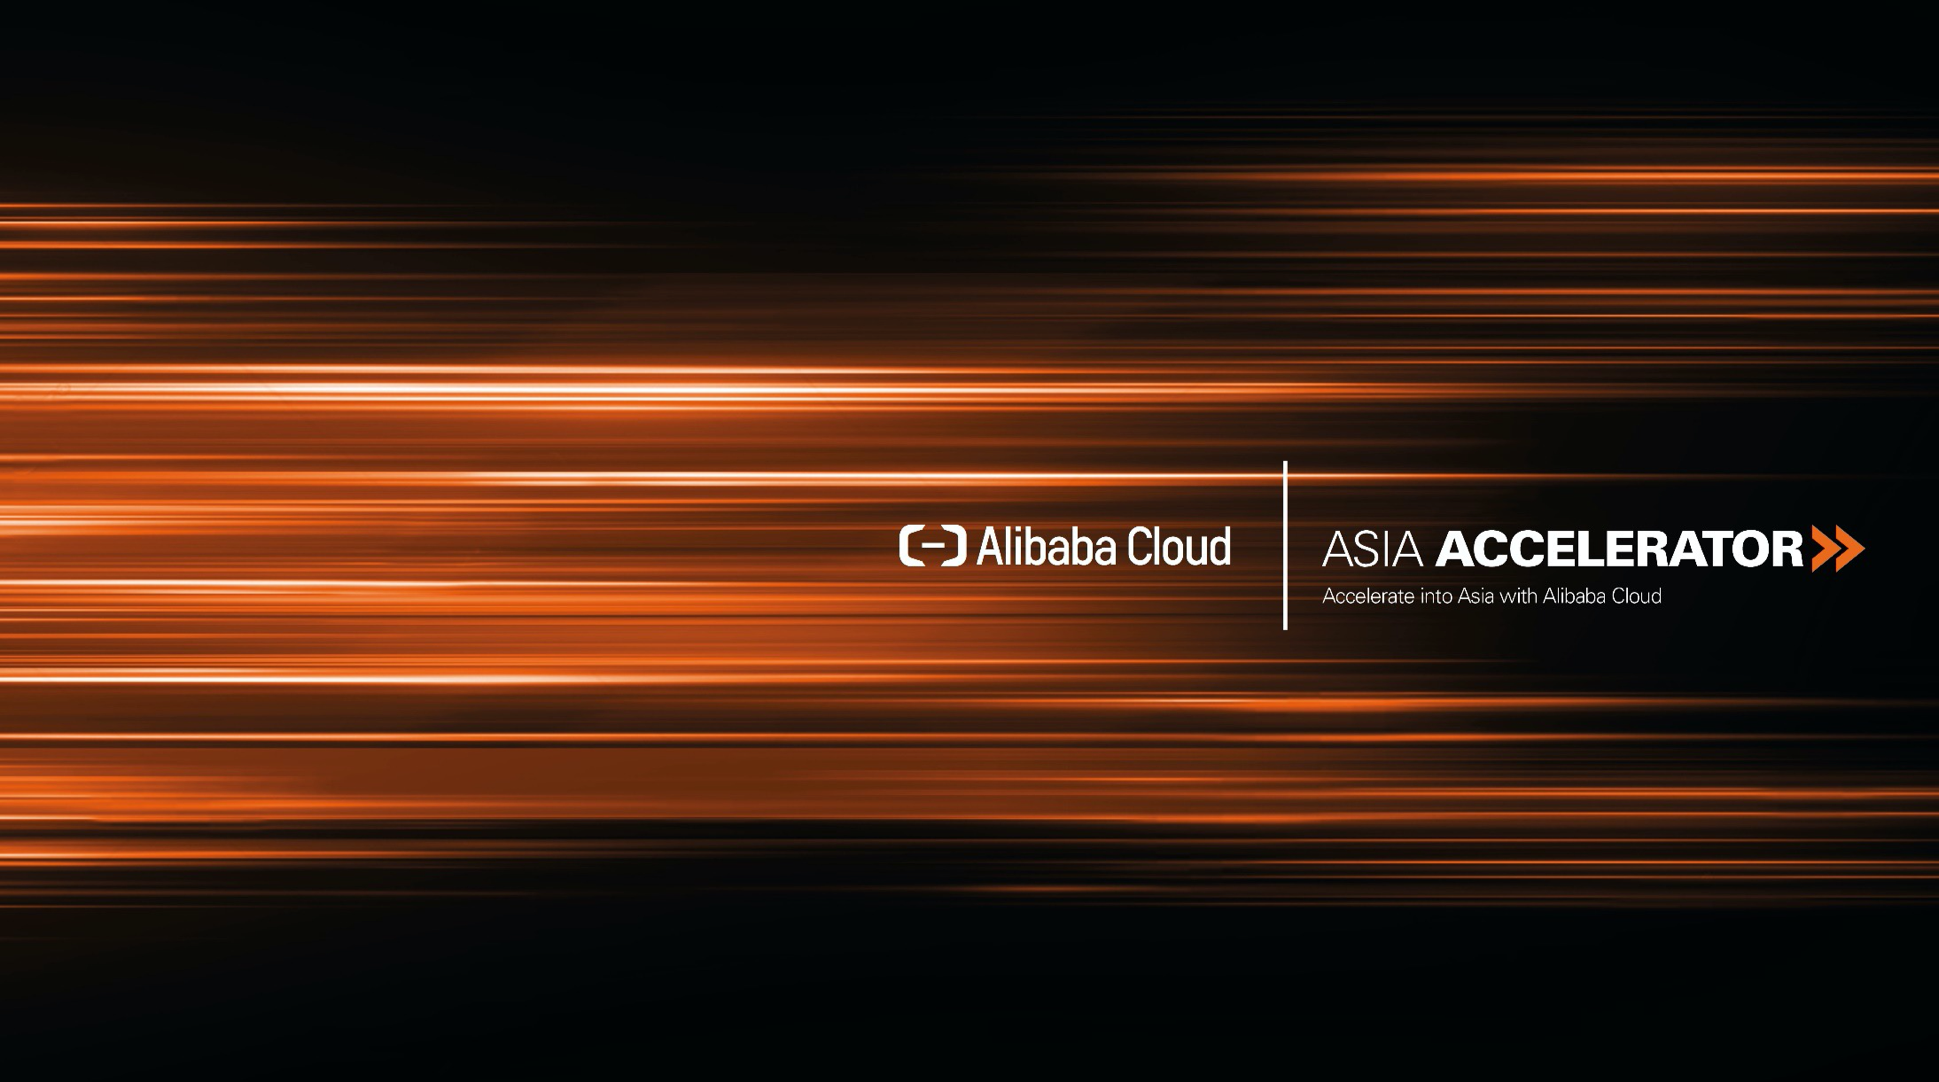 Alibaba Cloud Coupon Application for IDN